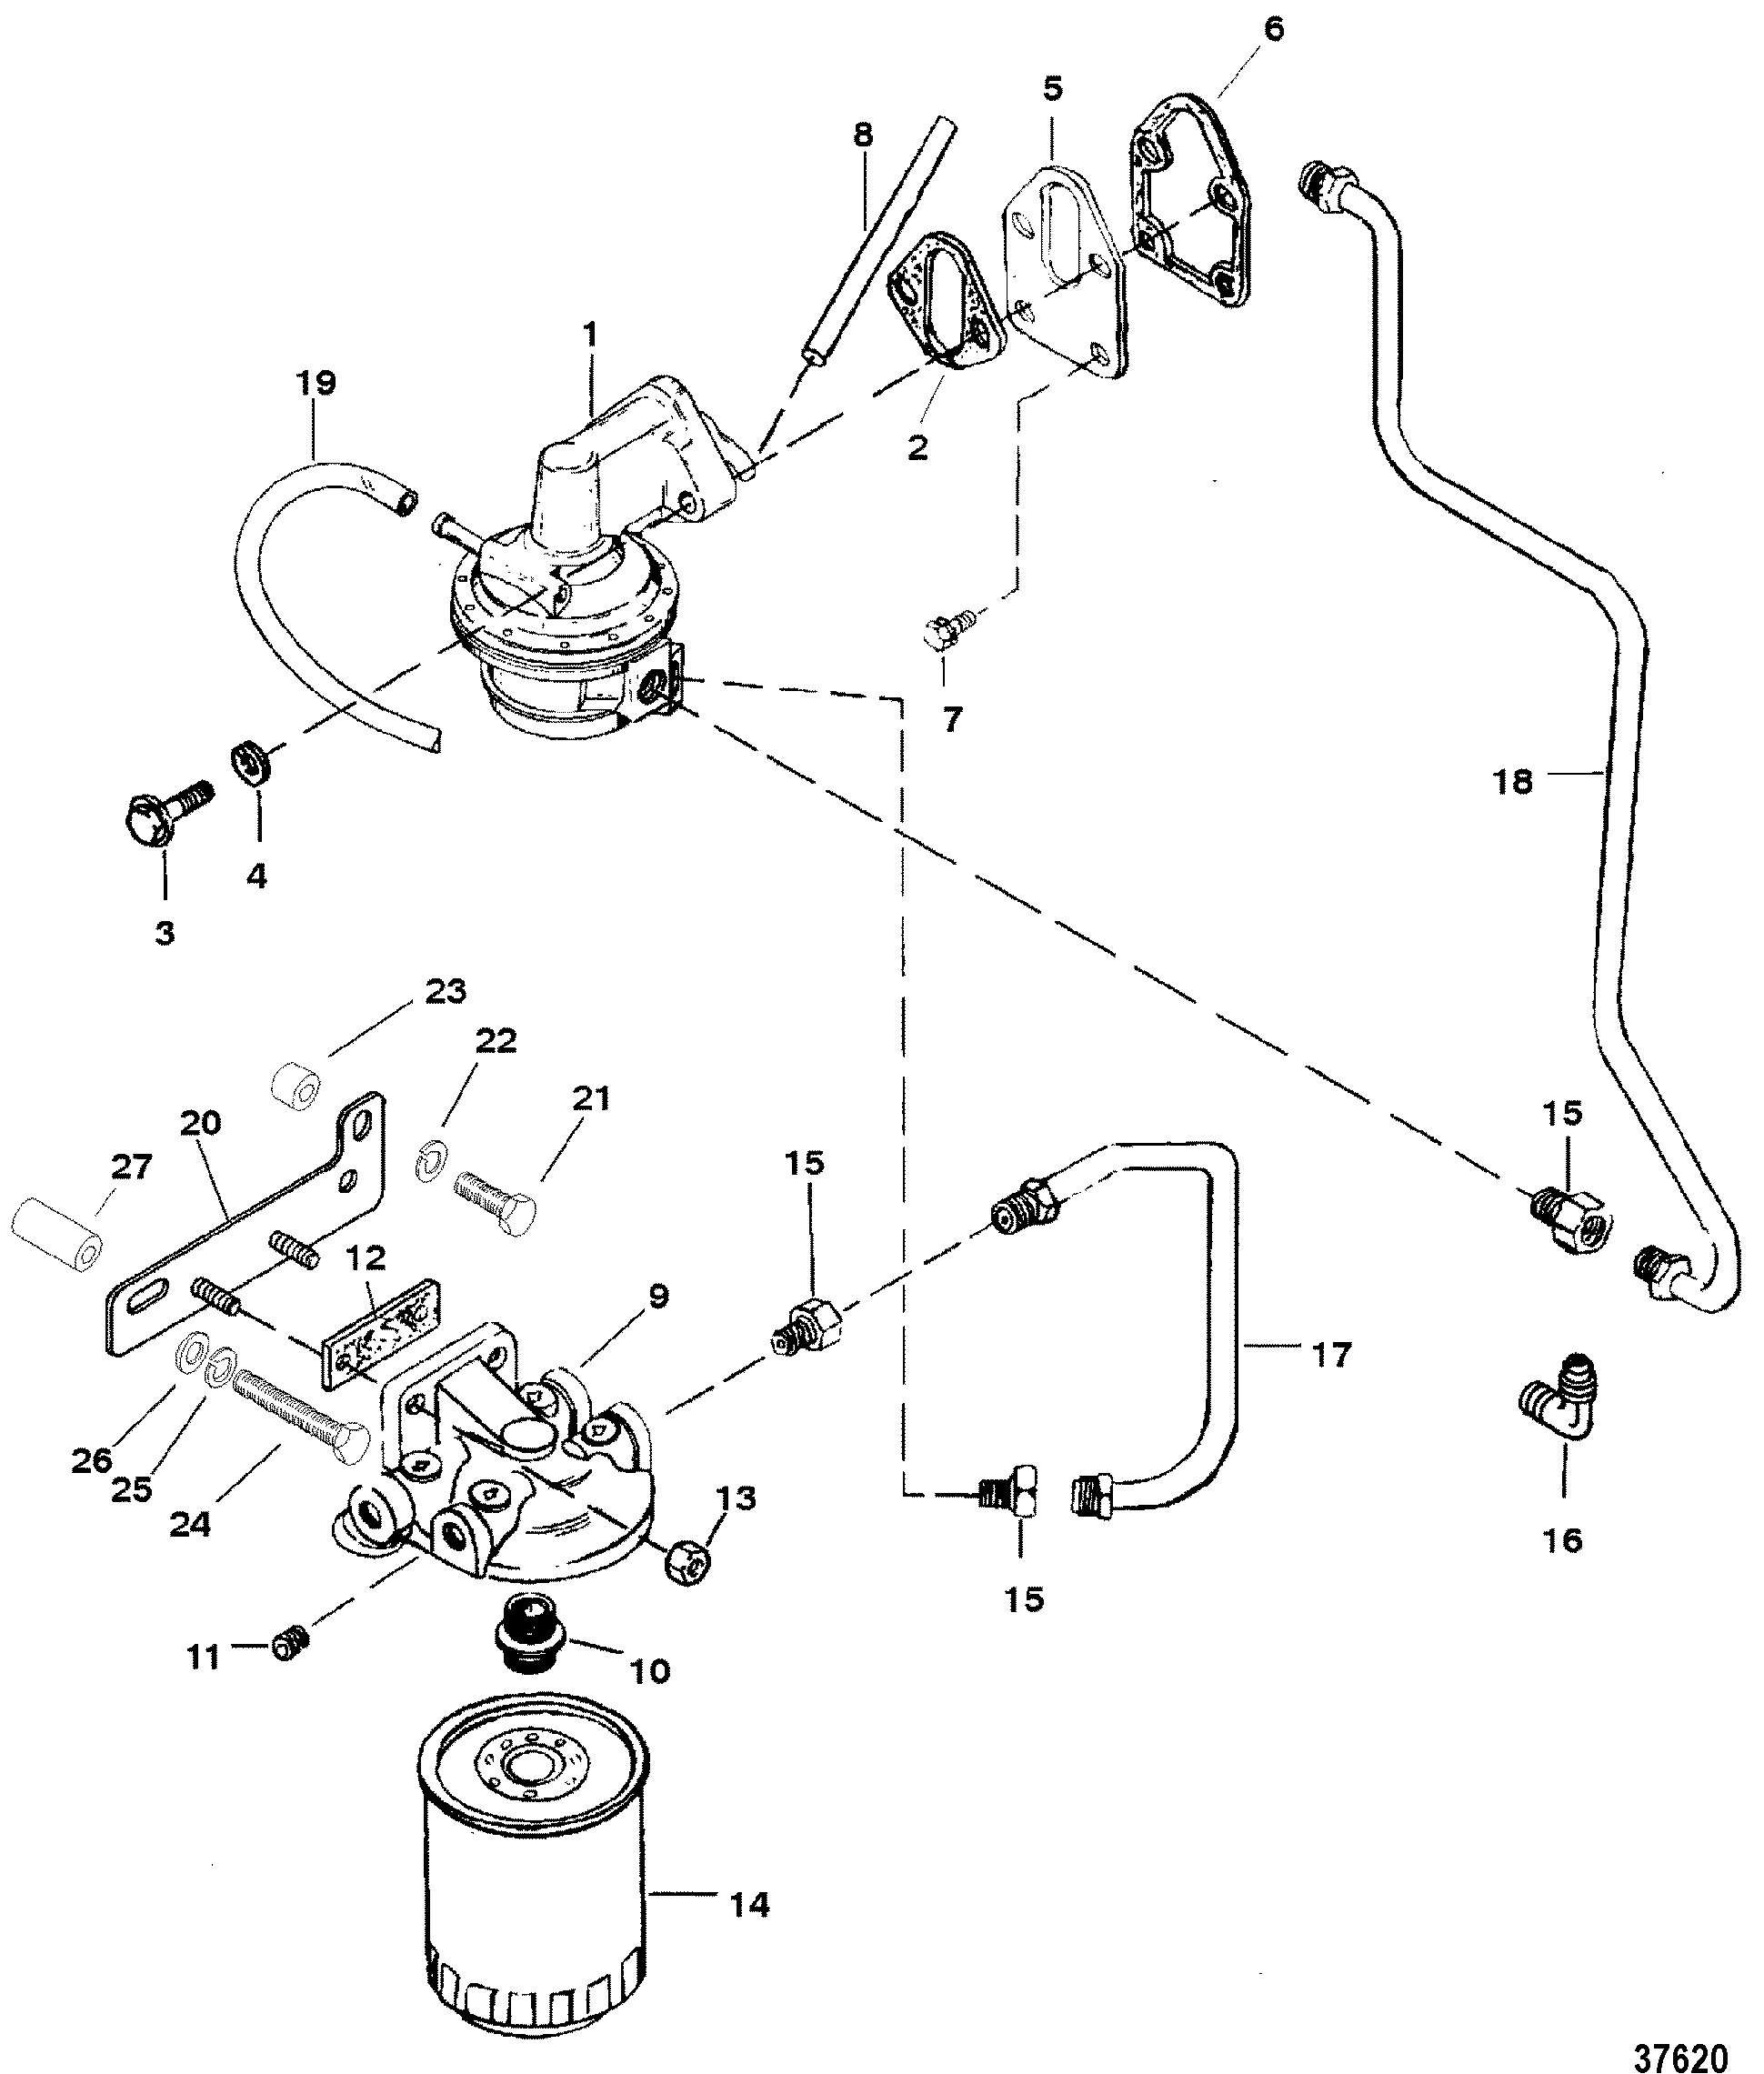 Hardin Marine Fuel Pump And Filter 350 Mercruiser Engine Diagram 57l Gm V 8 1988 1995 Serial 0b525982 Thru 0f600999